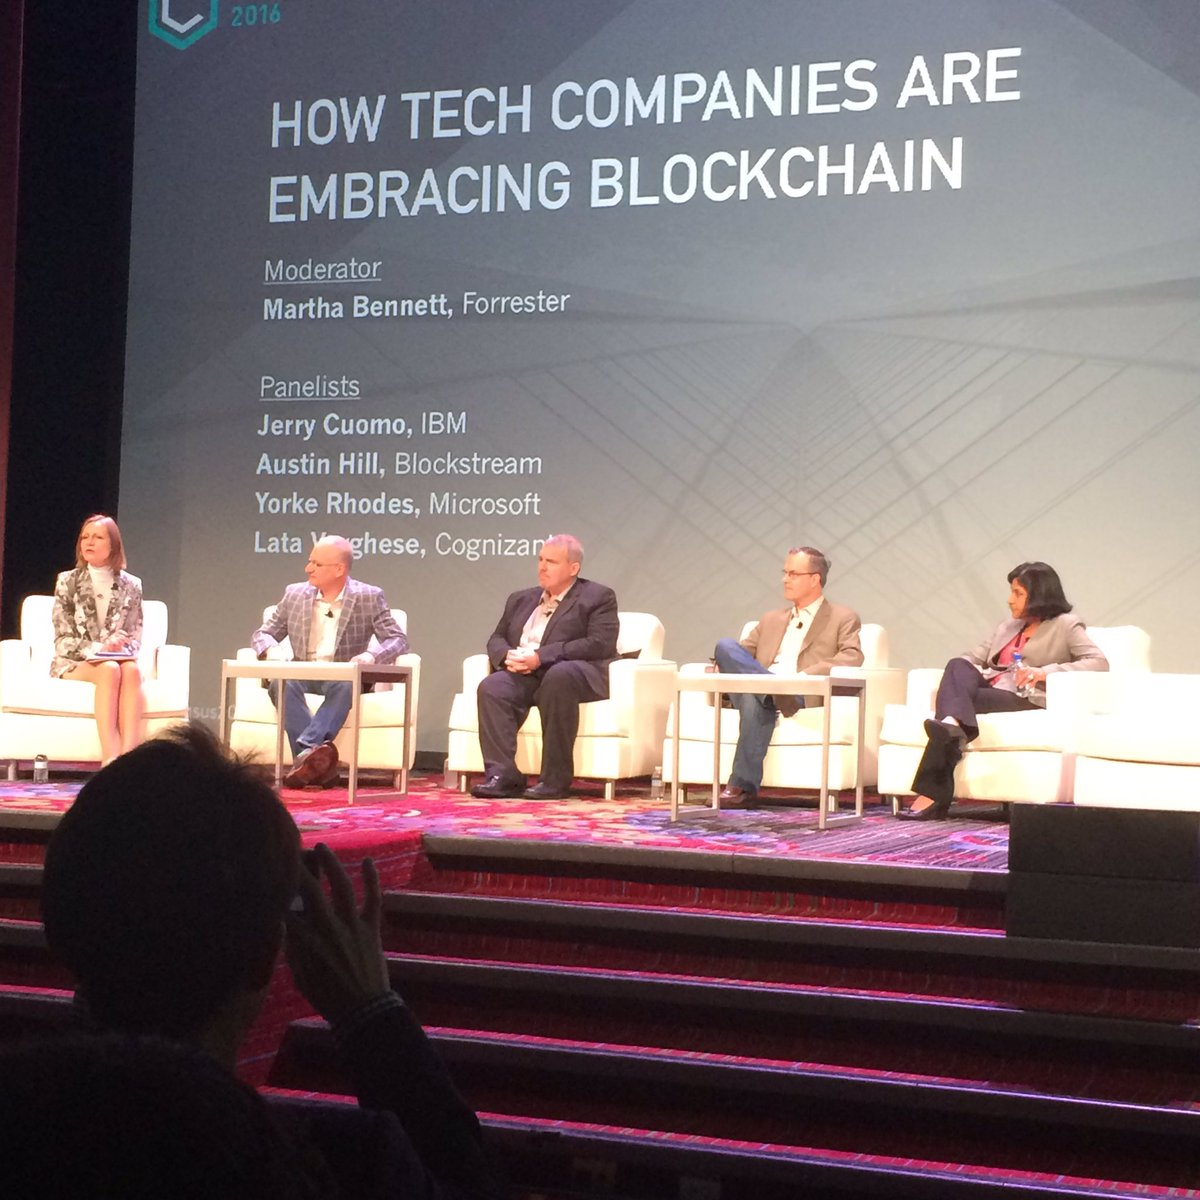 @Cognizant how tech companies are embracing Blockchain @Consensus2016 https://t.co/Zp7LYmsaaT